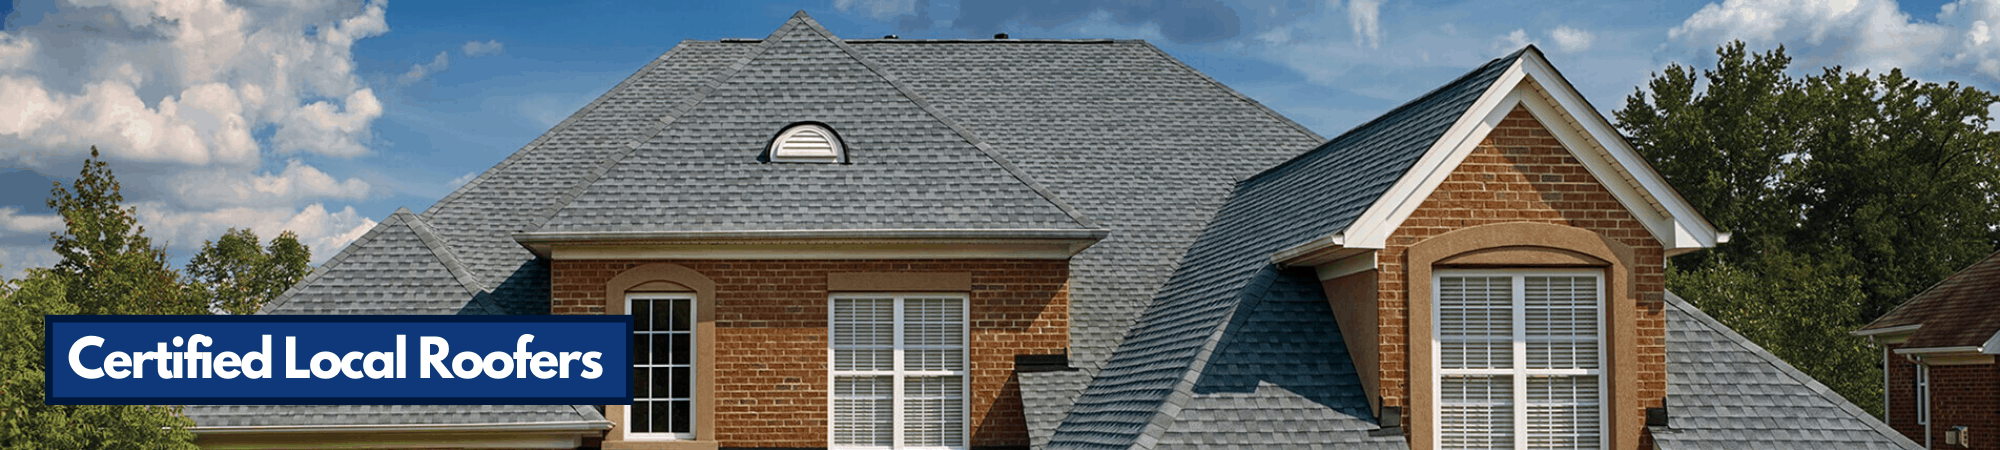 Certified Local Roofers